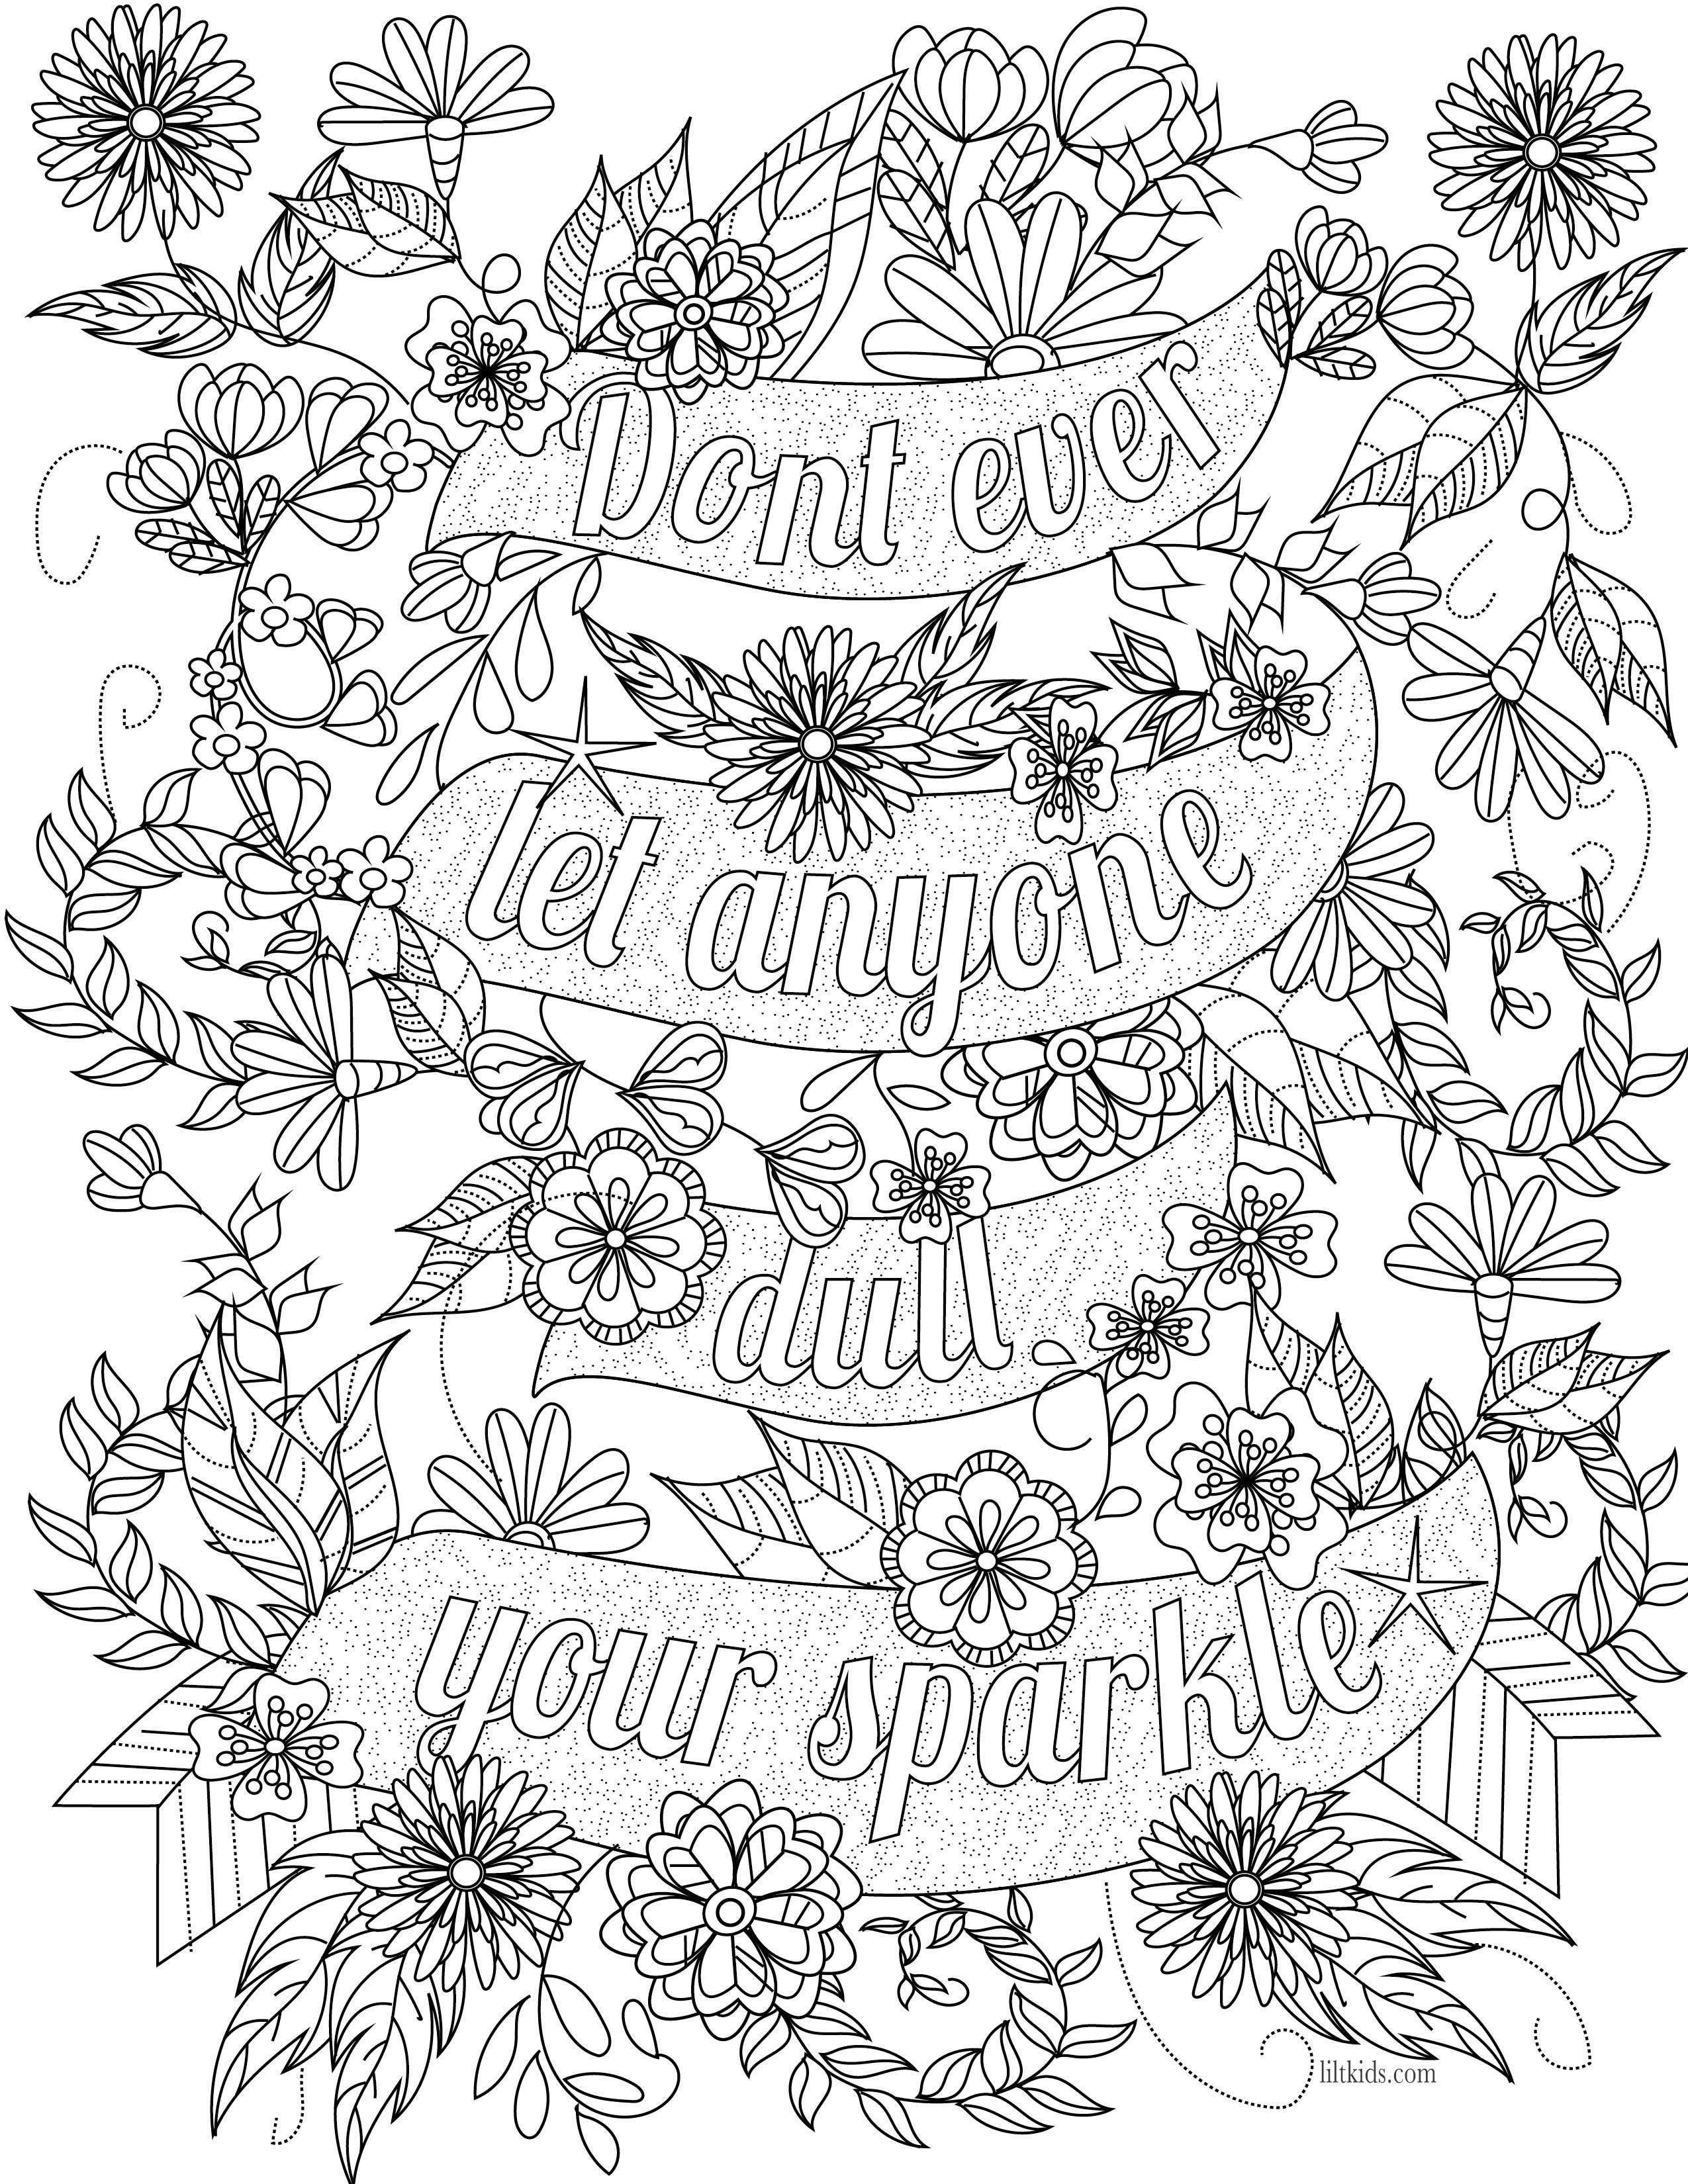 Coloring pages in coloring book - Free Inspirational Quote Adult Coloring Book Image From Liltkids Com See More Free Adult